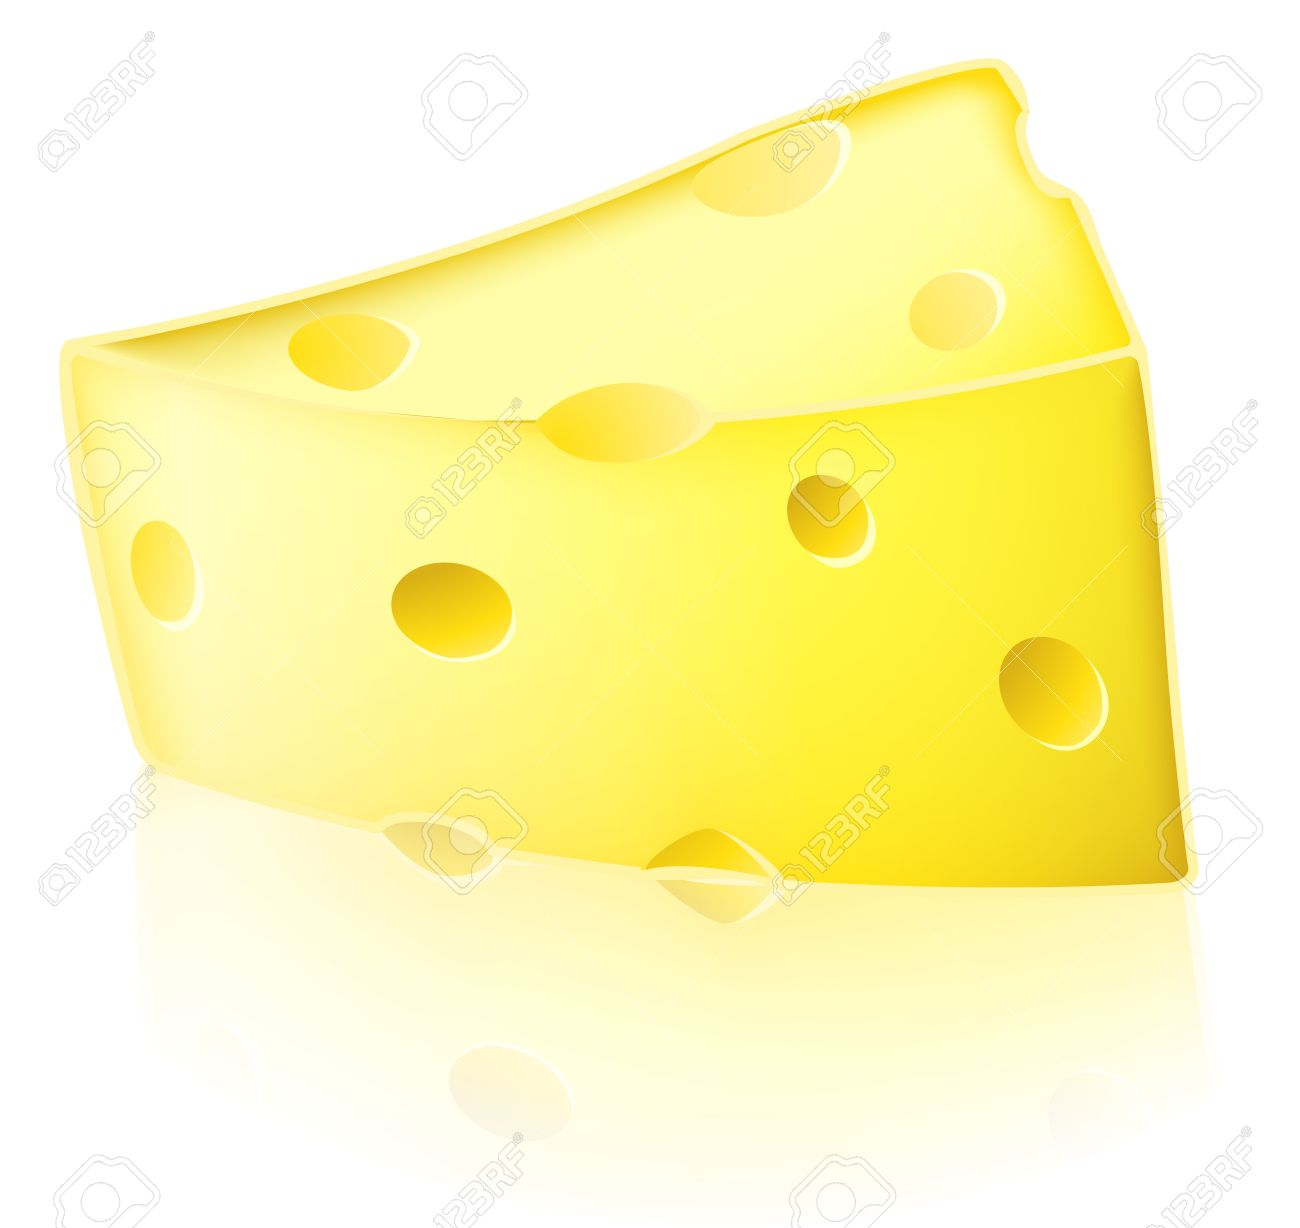 Cheese clipart illustration.  collection of no